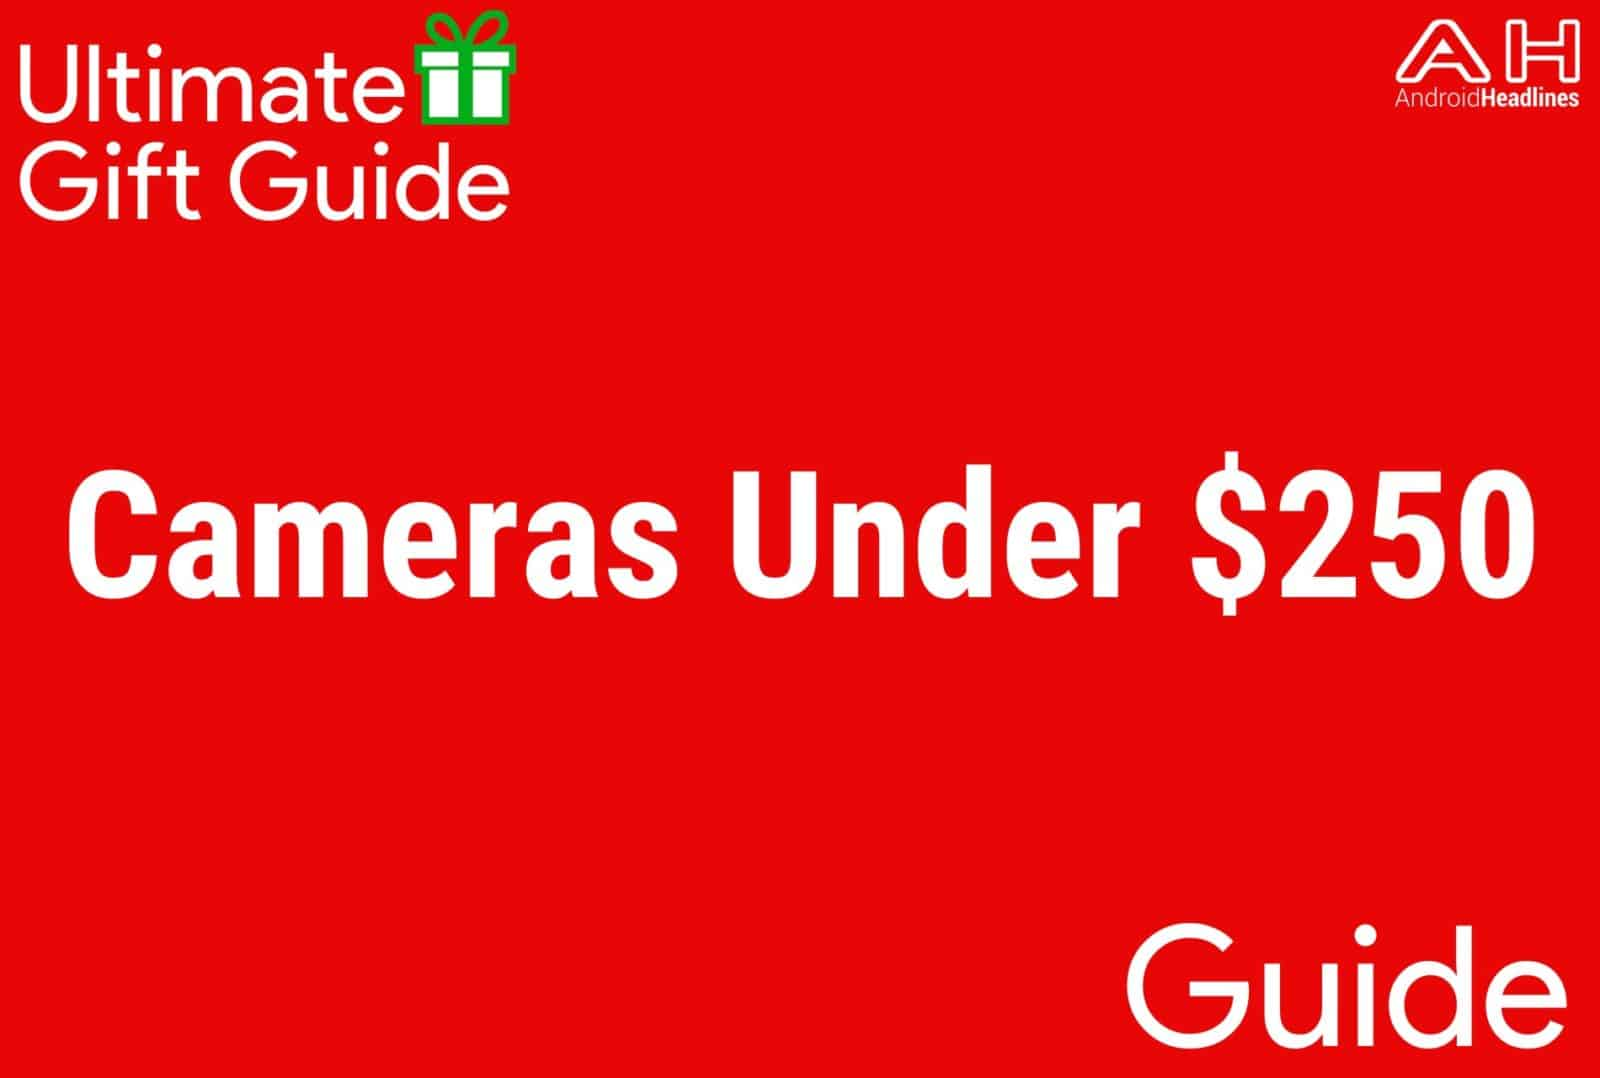 Cameras Under $250 - Gift Guide 2015